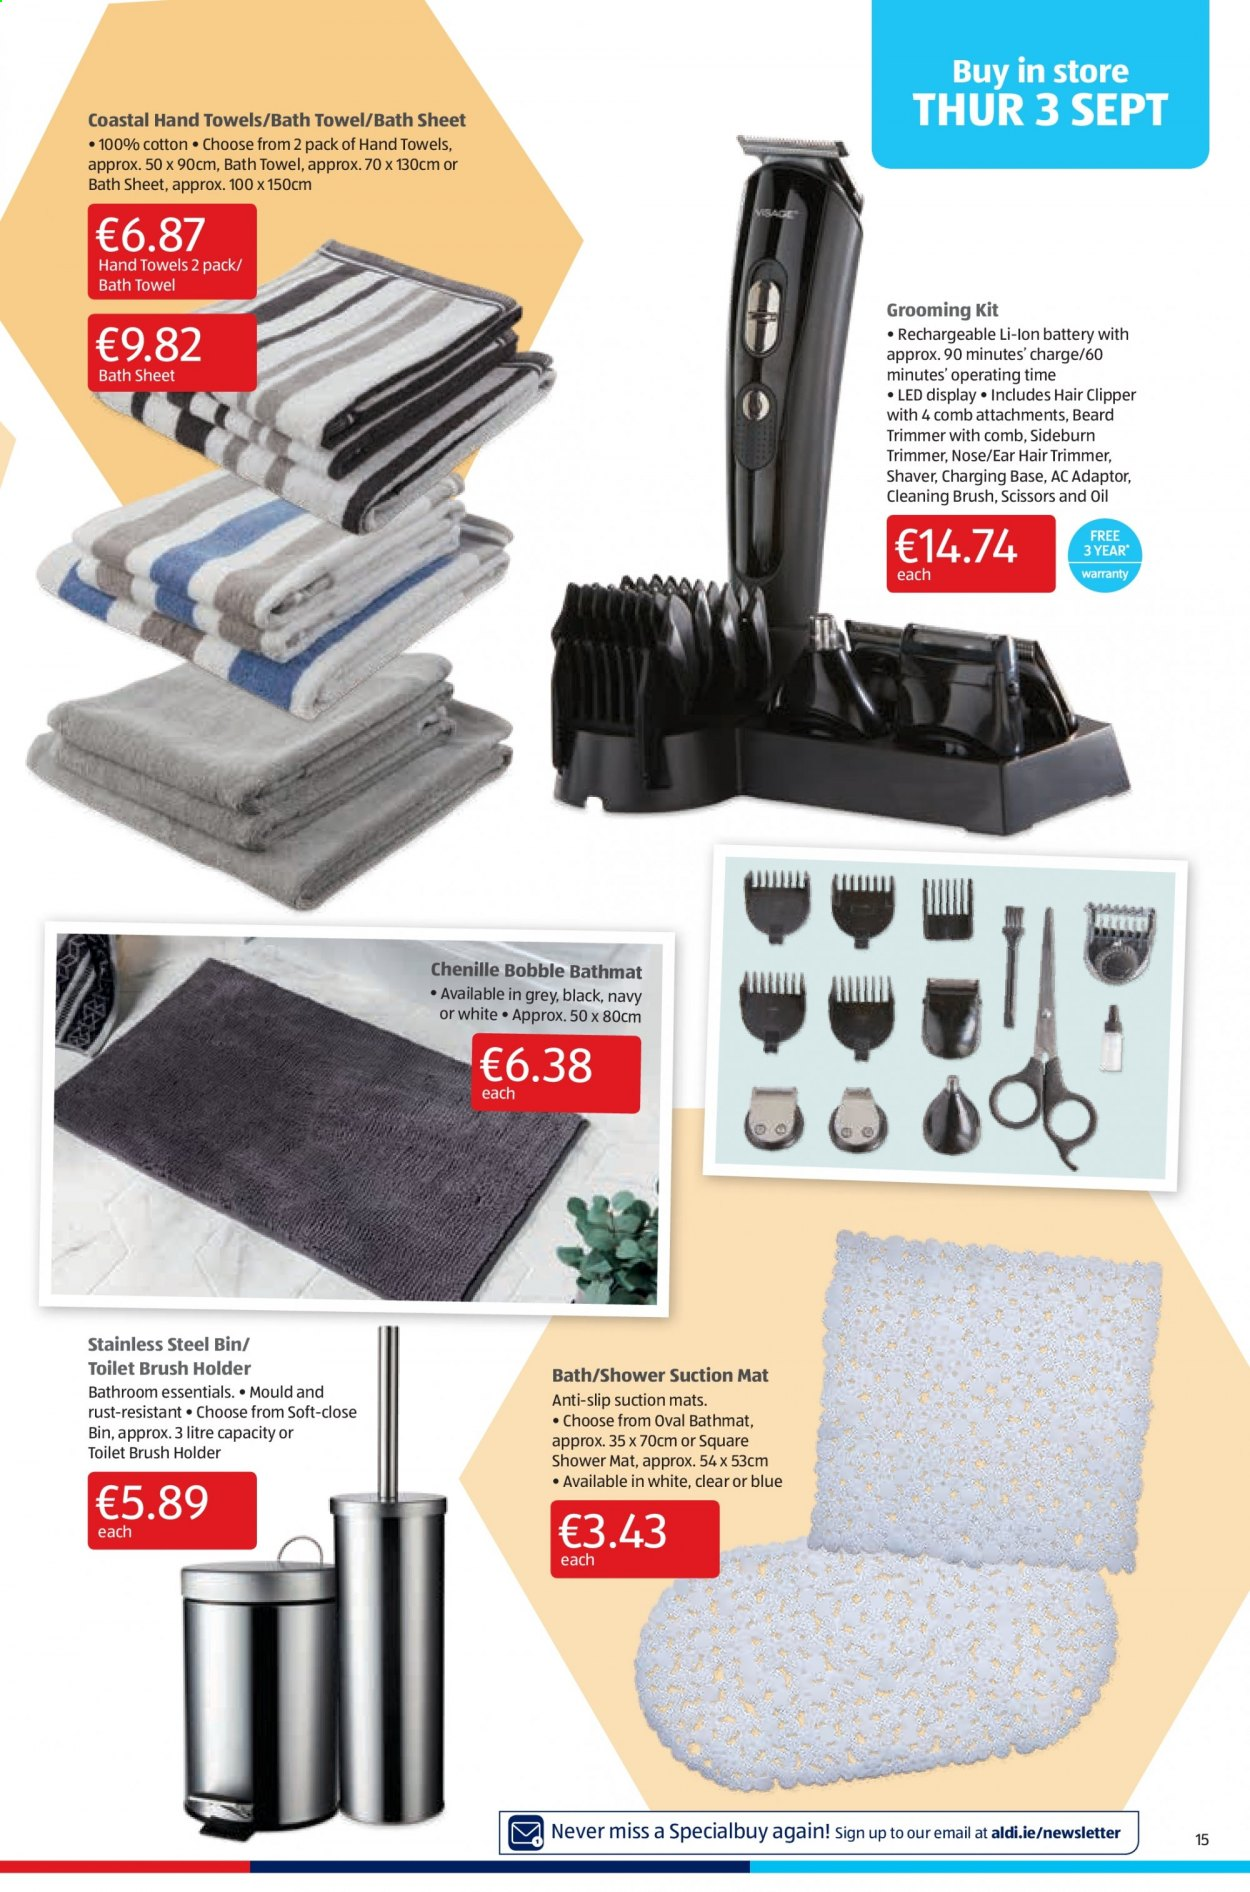 Aldi offer  - 3.9.2020 - 6.9.2020 - Sales products - bath, bath sheet, bath towel, bathroom, bin, brush, cotton, mat, sheet, stainless, toilet, toilet brush, towel, trimmer, holder, shaver, scissors, rust, hair clipper, oil, stainless steel, li-ion battery, 100% cotton, essentials, led. Page 15.